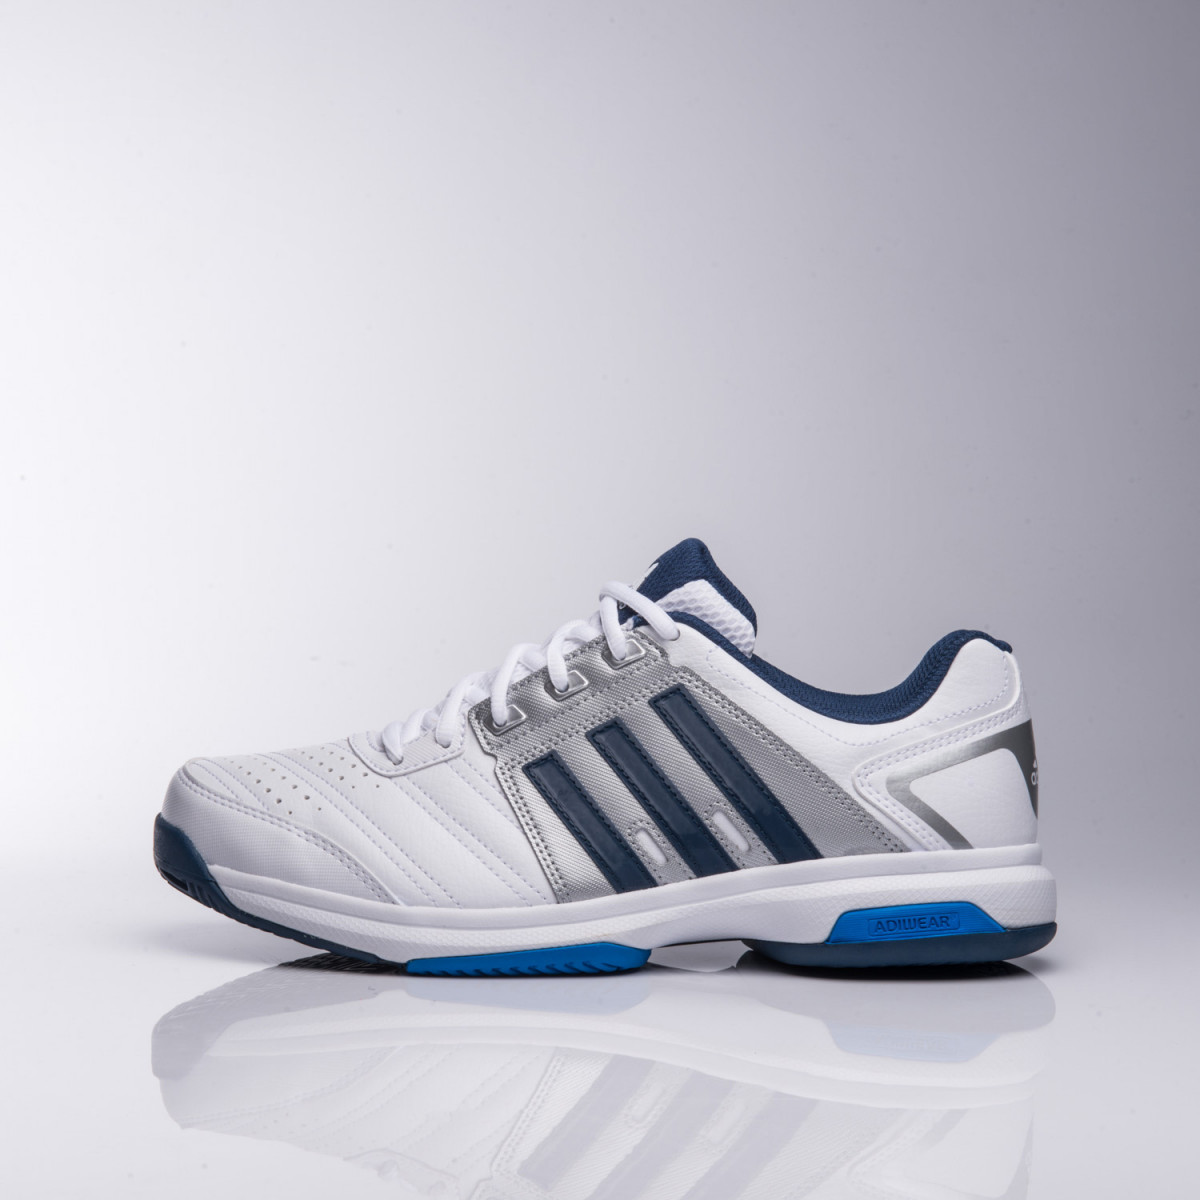 ZAPATILLAS ADIDAS BARRICADE APPROACH STR